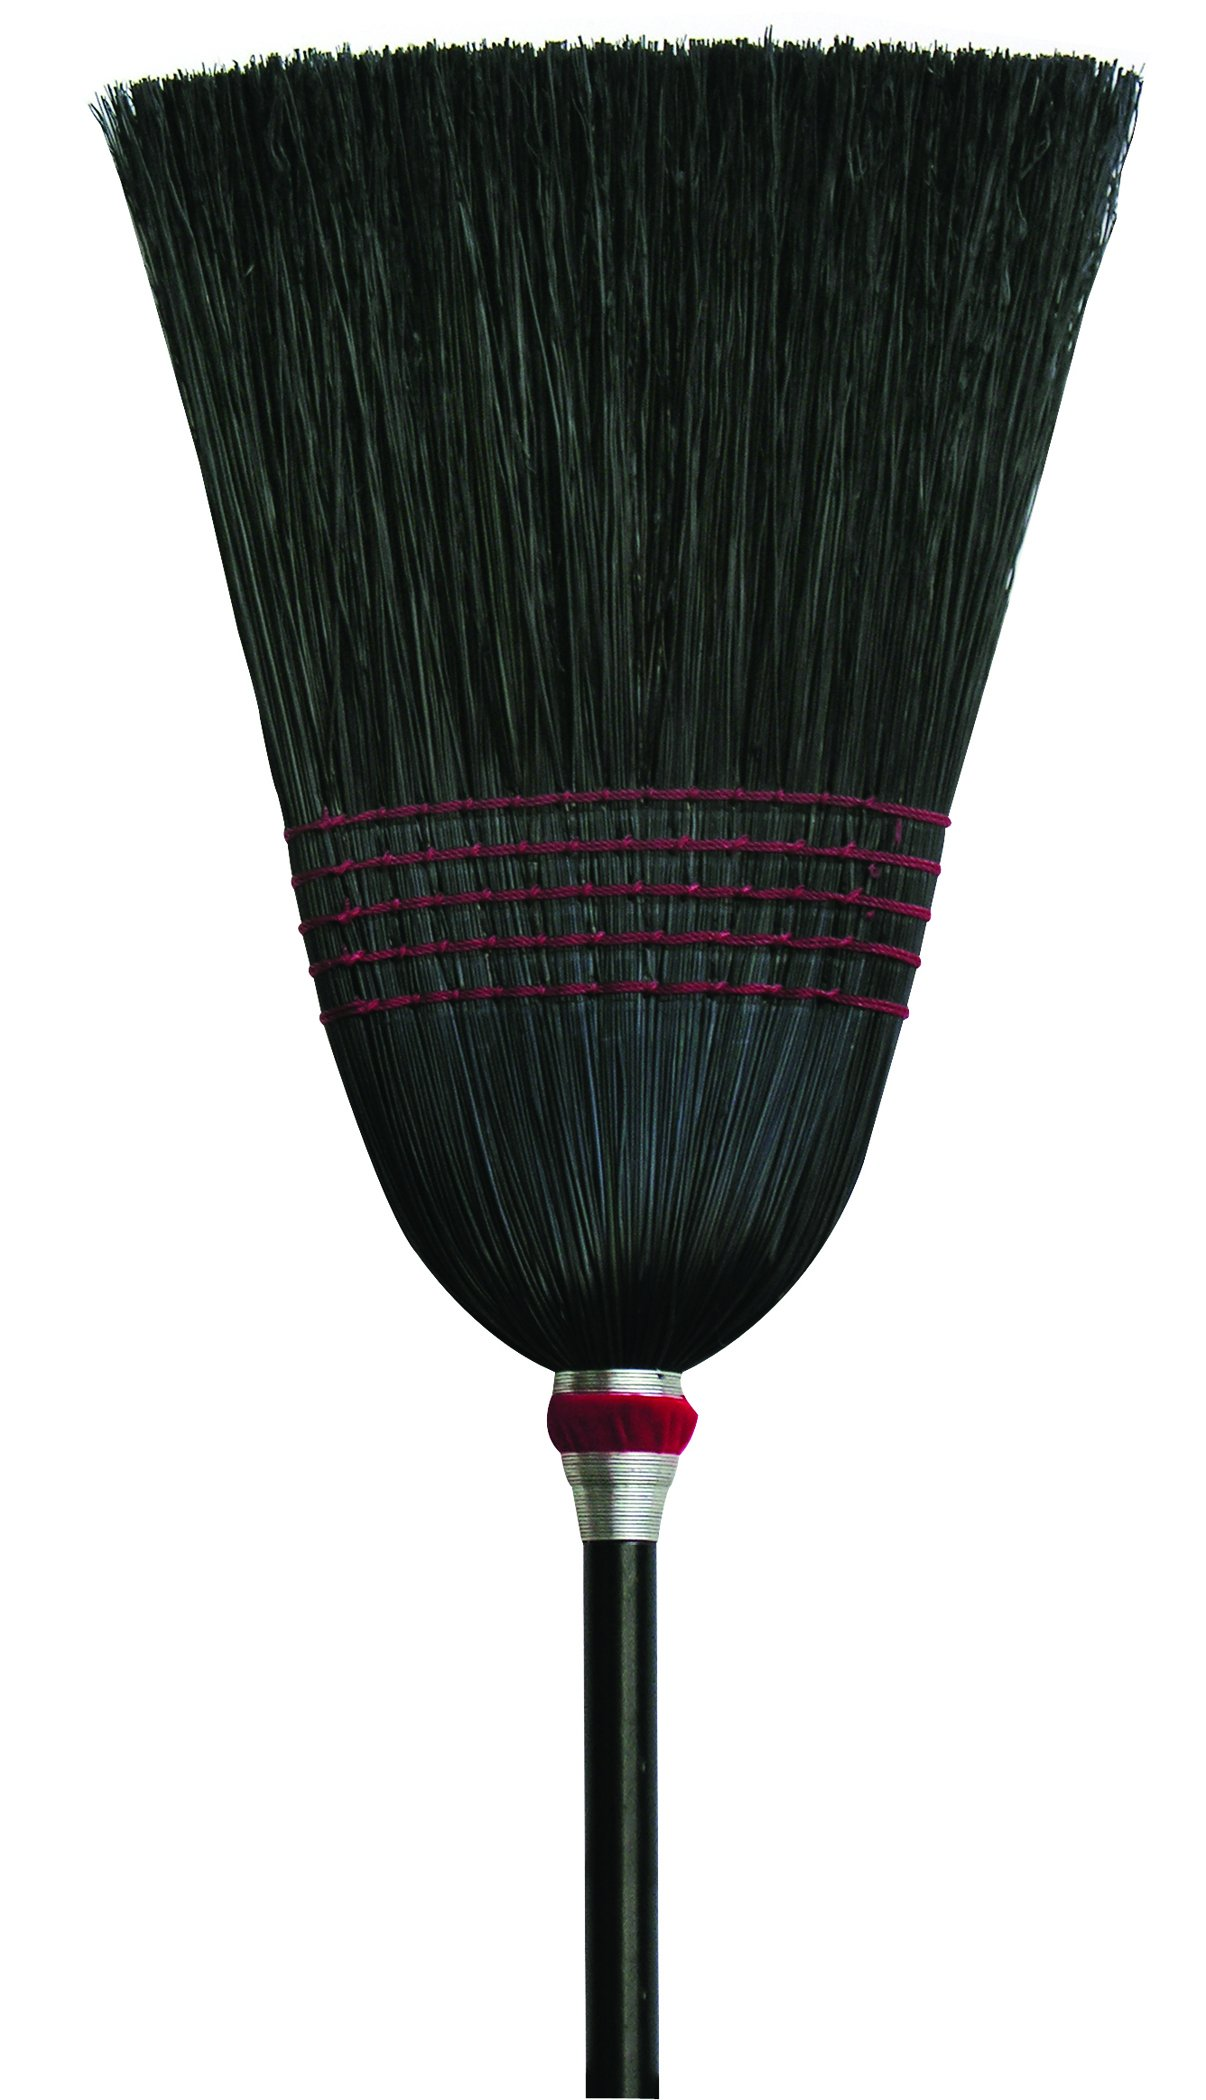 O'Cedar Commercial 6102-6 Parlor Black Corn Broom (Pack of 6)